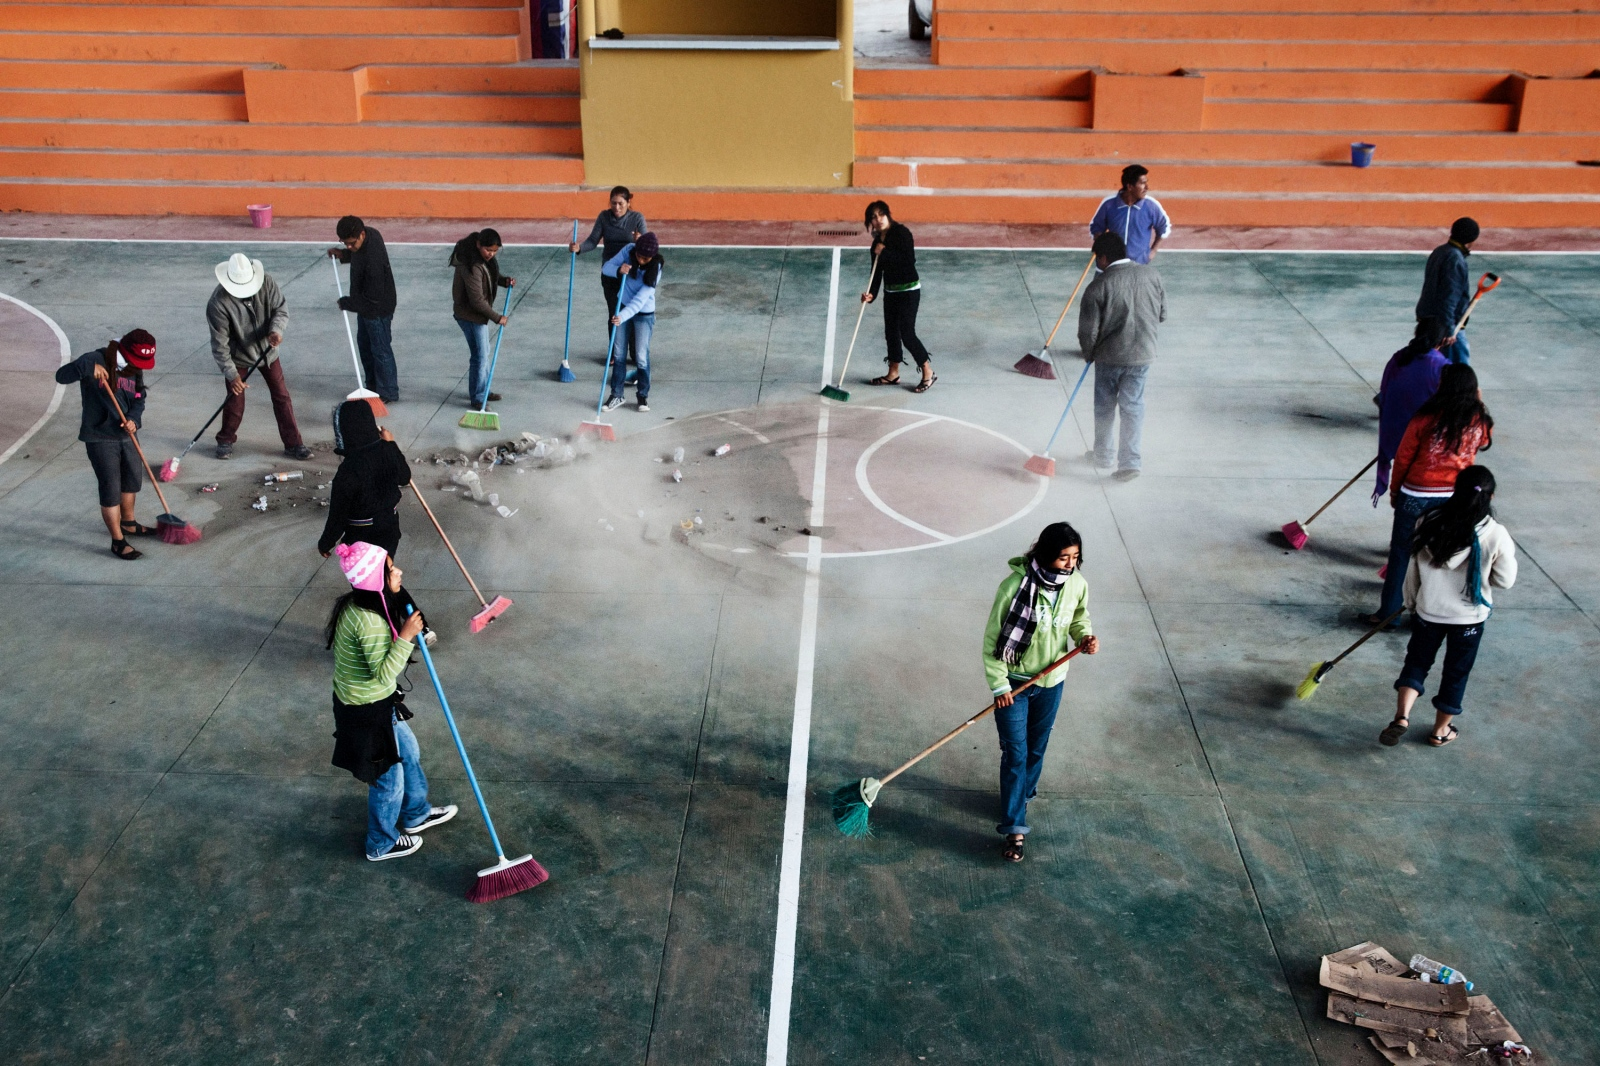 SANTA MARIA TLAHUITOLTEPEC, MAY 19, 2012.-Villagers from Tlahuitoltepec sweep the main basketball court to prepare it for the inauguration of the basketball tournament. In a community assembly they create commissions to organize the event. The commissioners are coordinated by the sporting authorities.